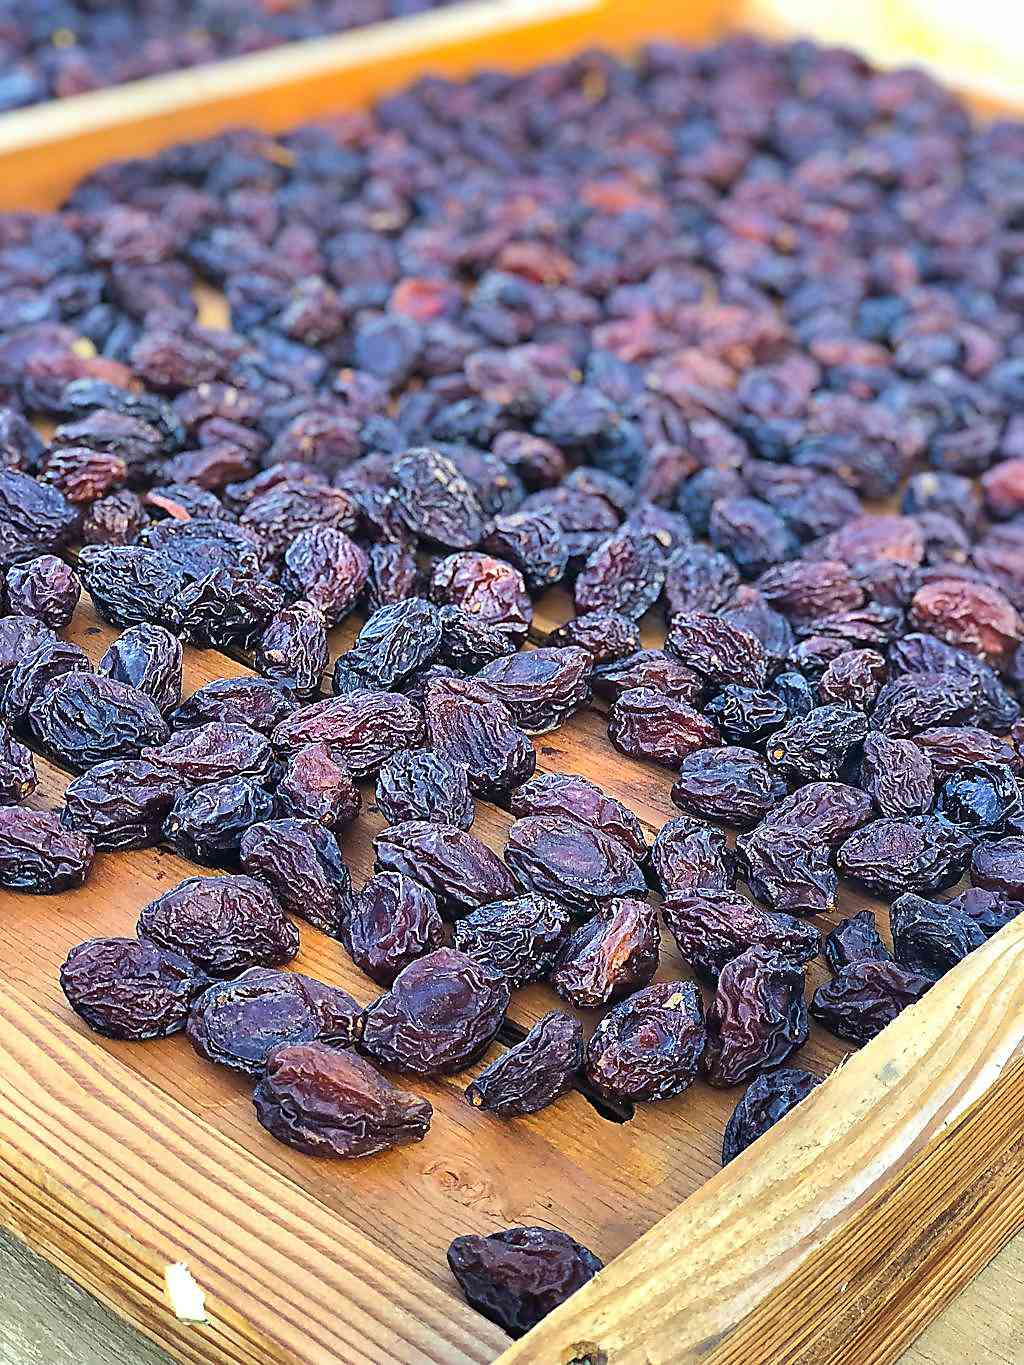 Prunes on drying flat